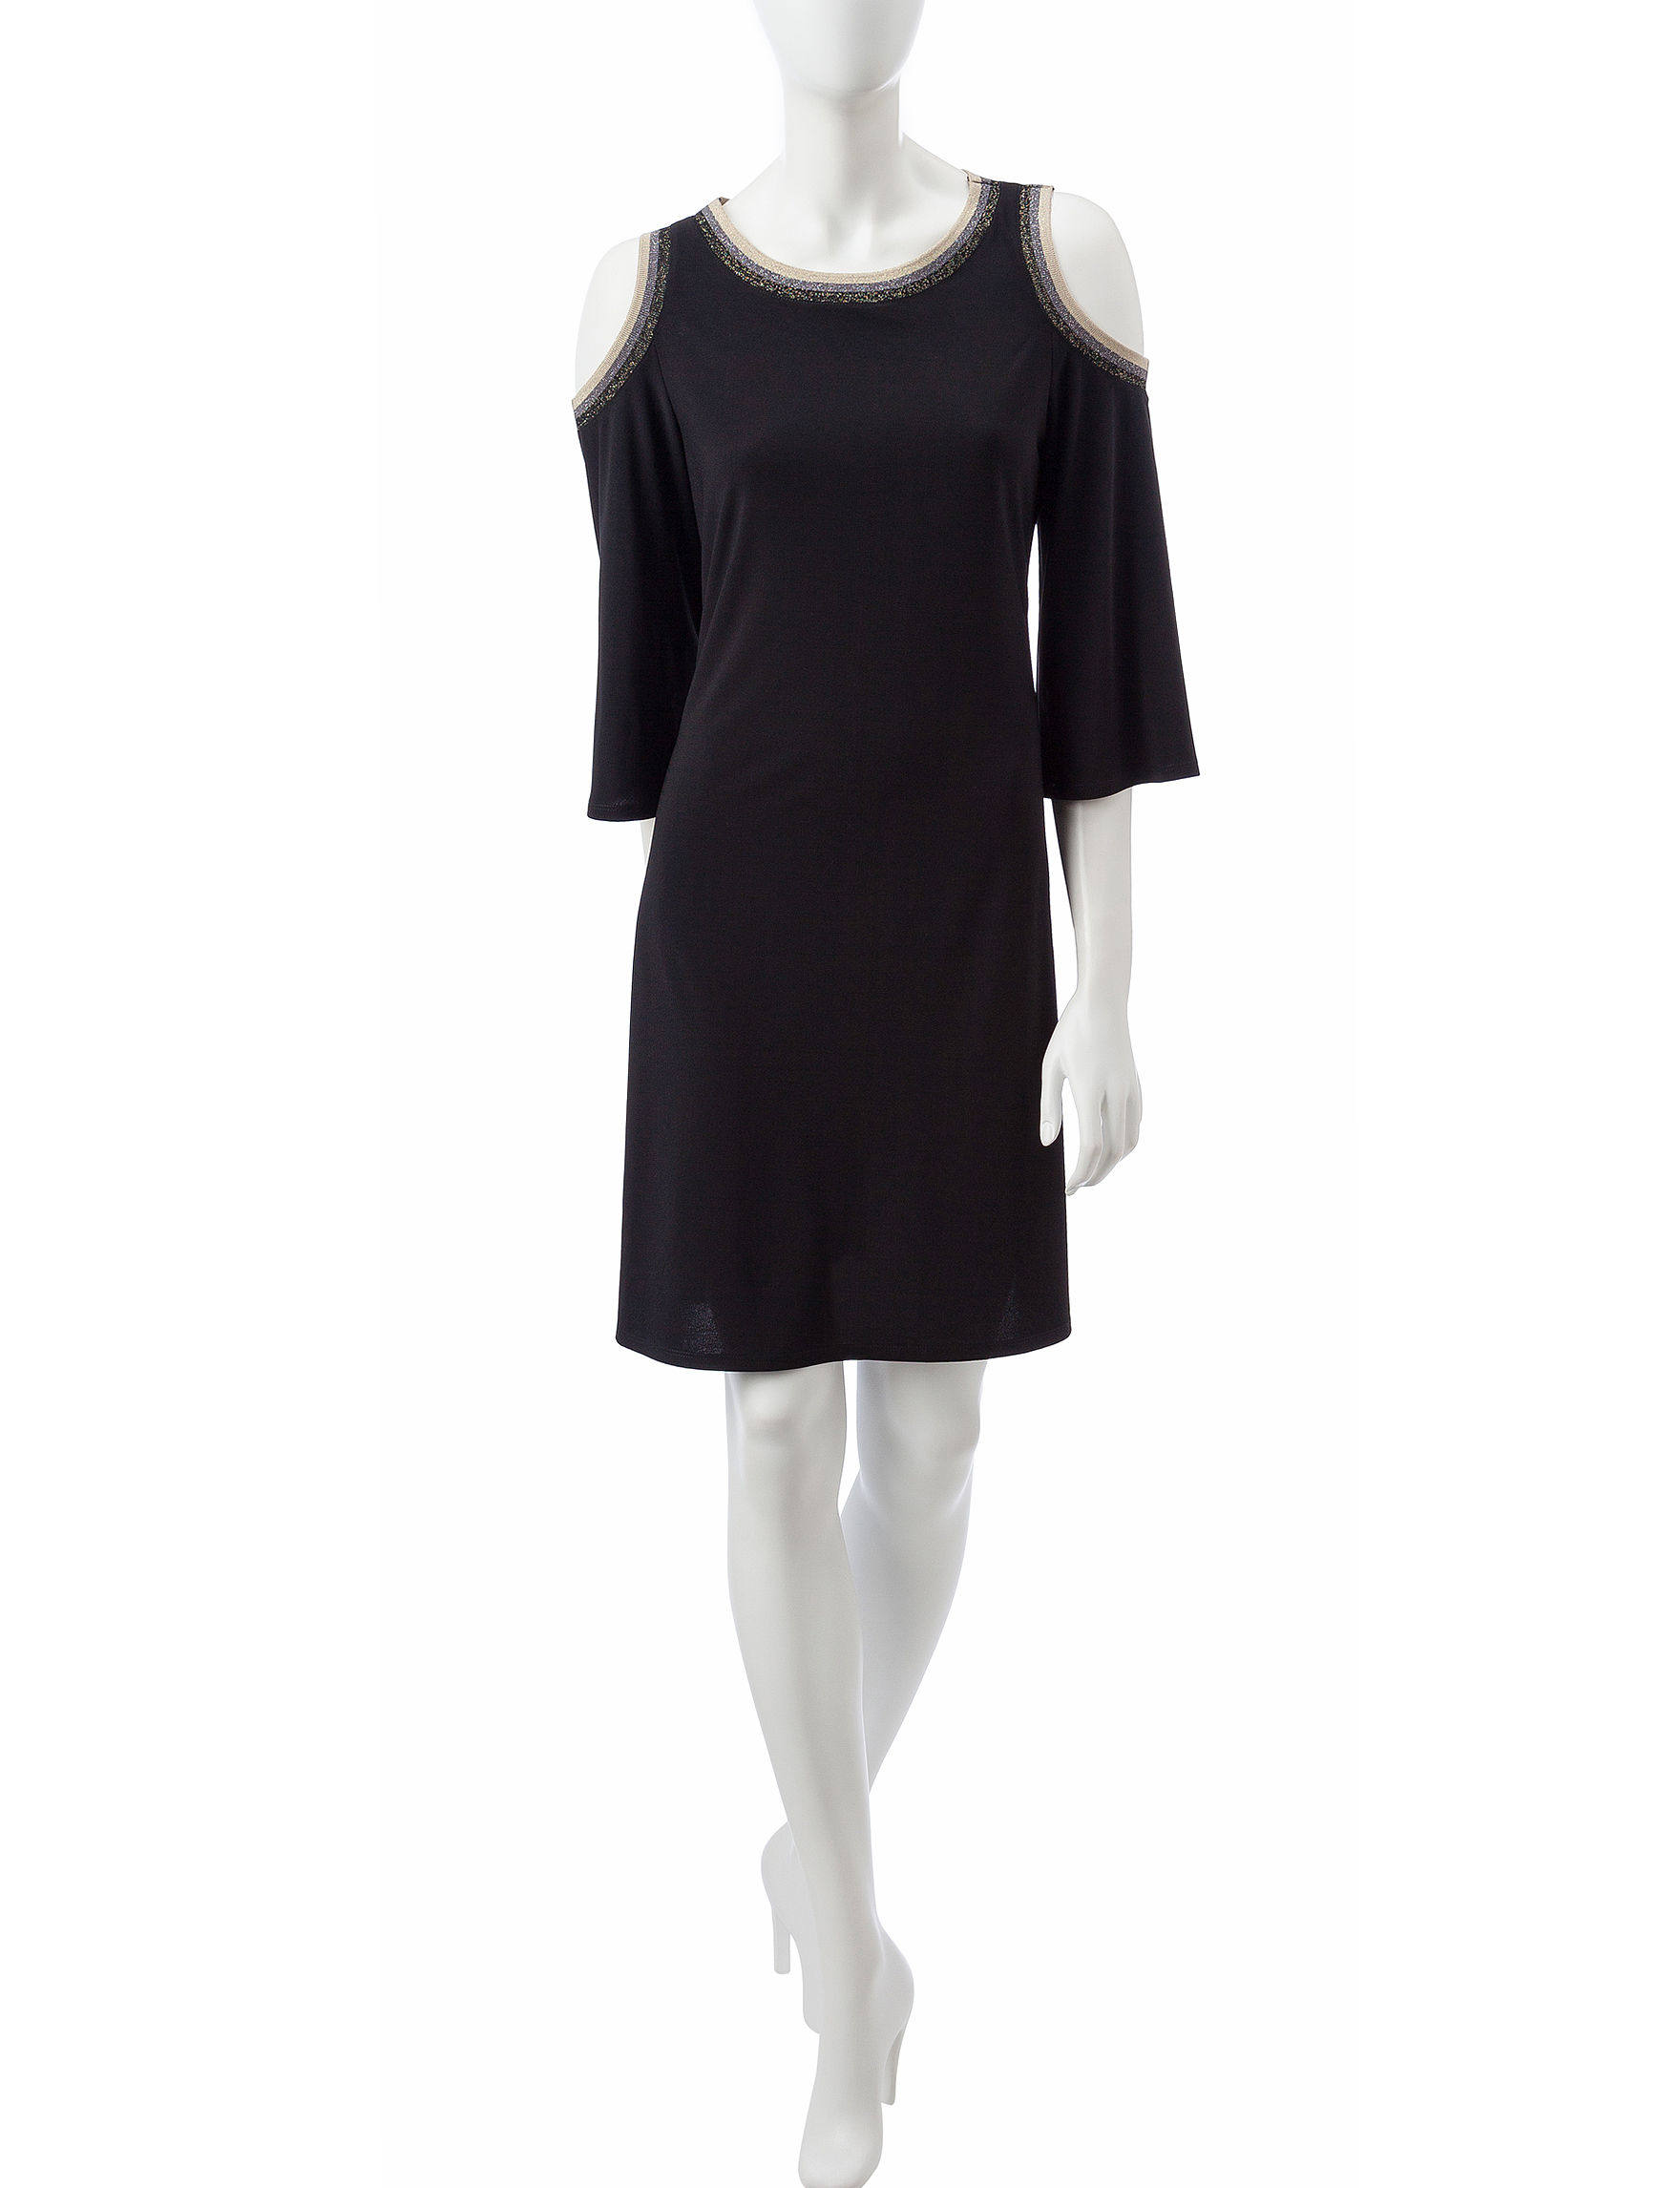 MSK Black Everyday & Casual A-line Dresses